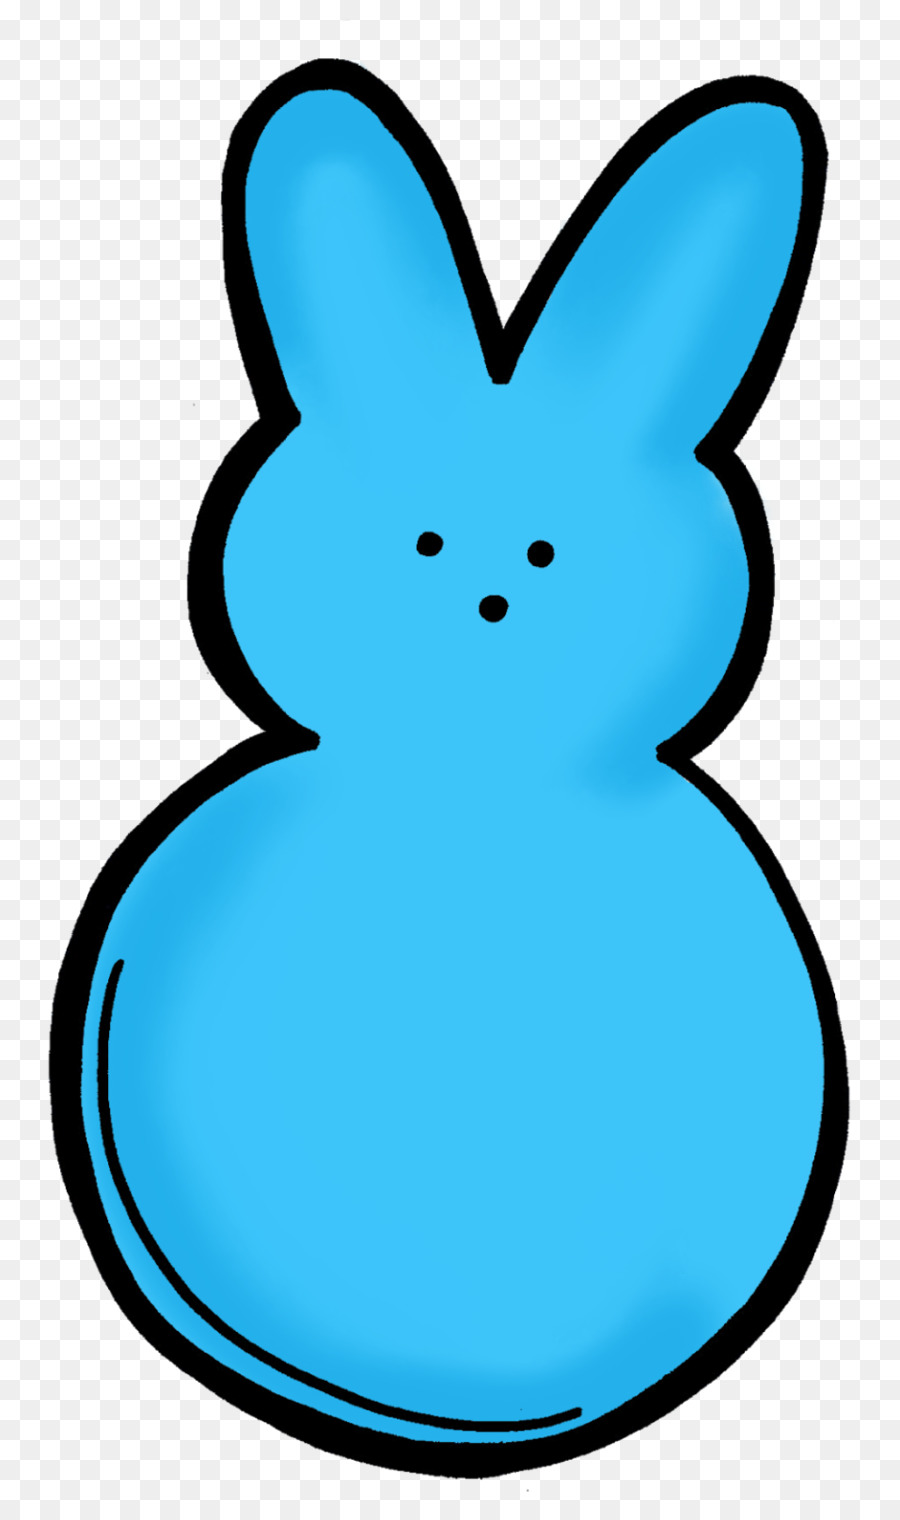 Blue bunny logo clipart clipart library library Easter Bunny Background png download - 957*1600 - Free Transparent ... clipart library library